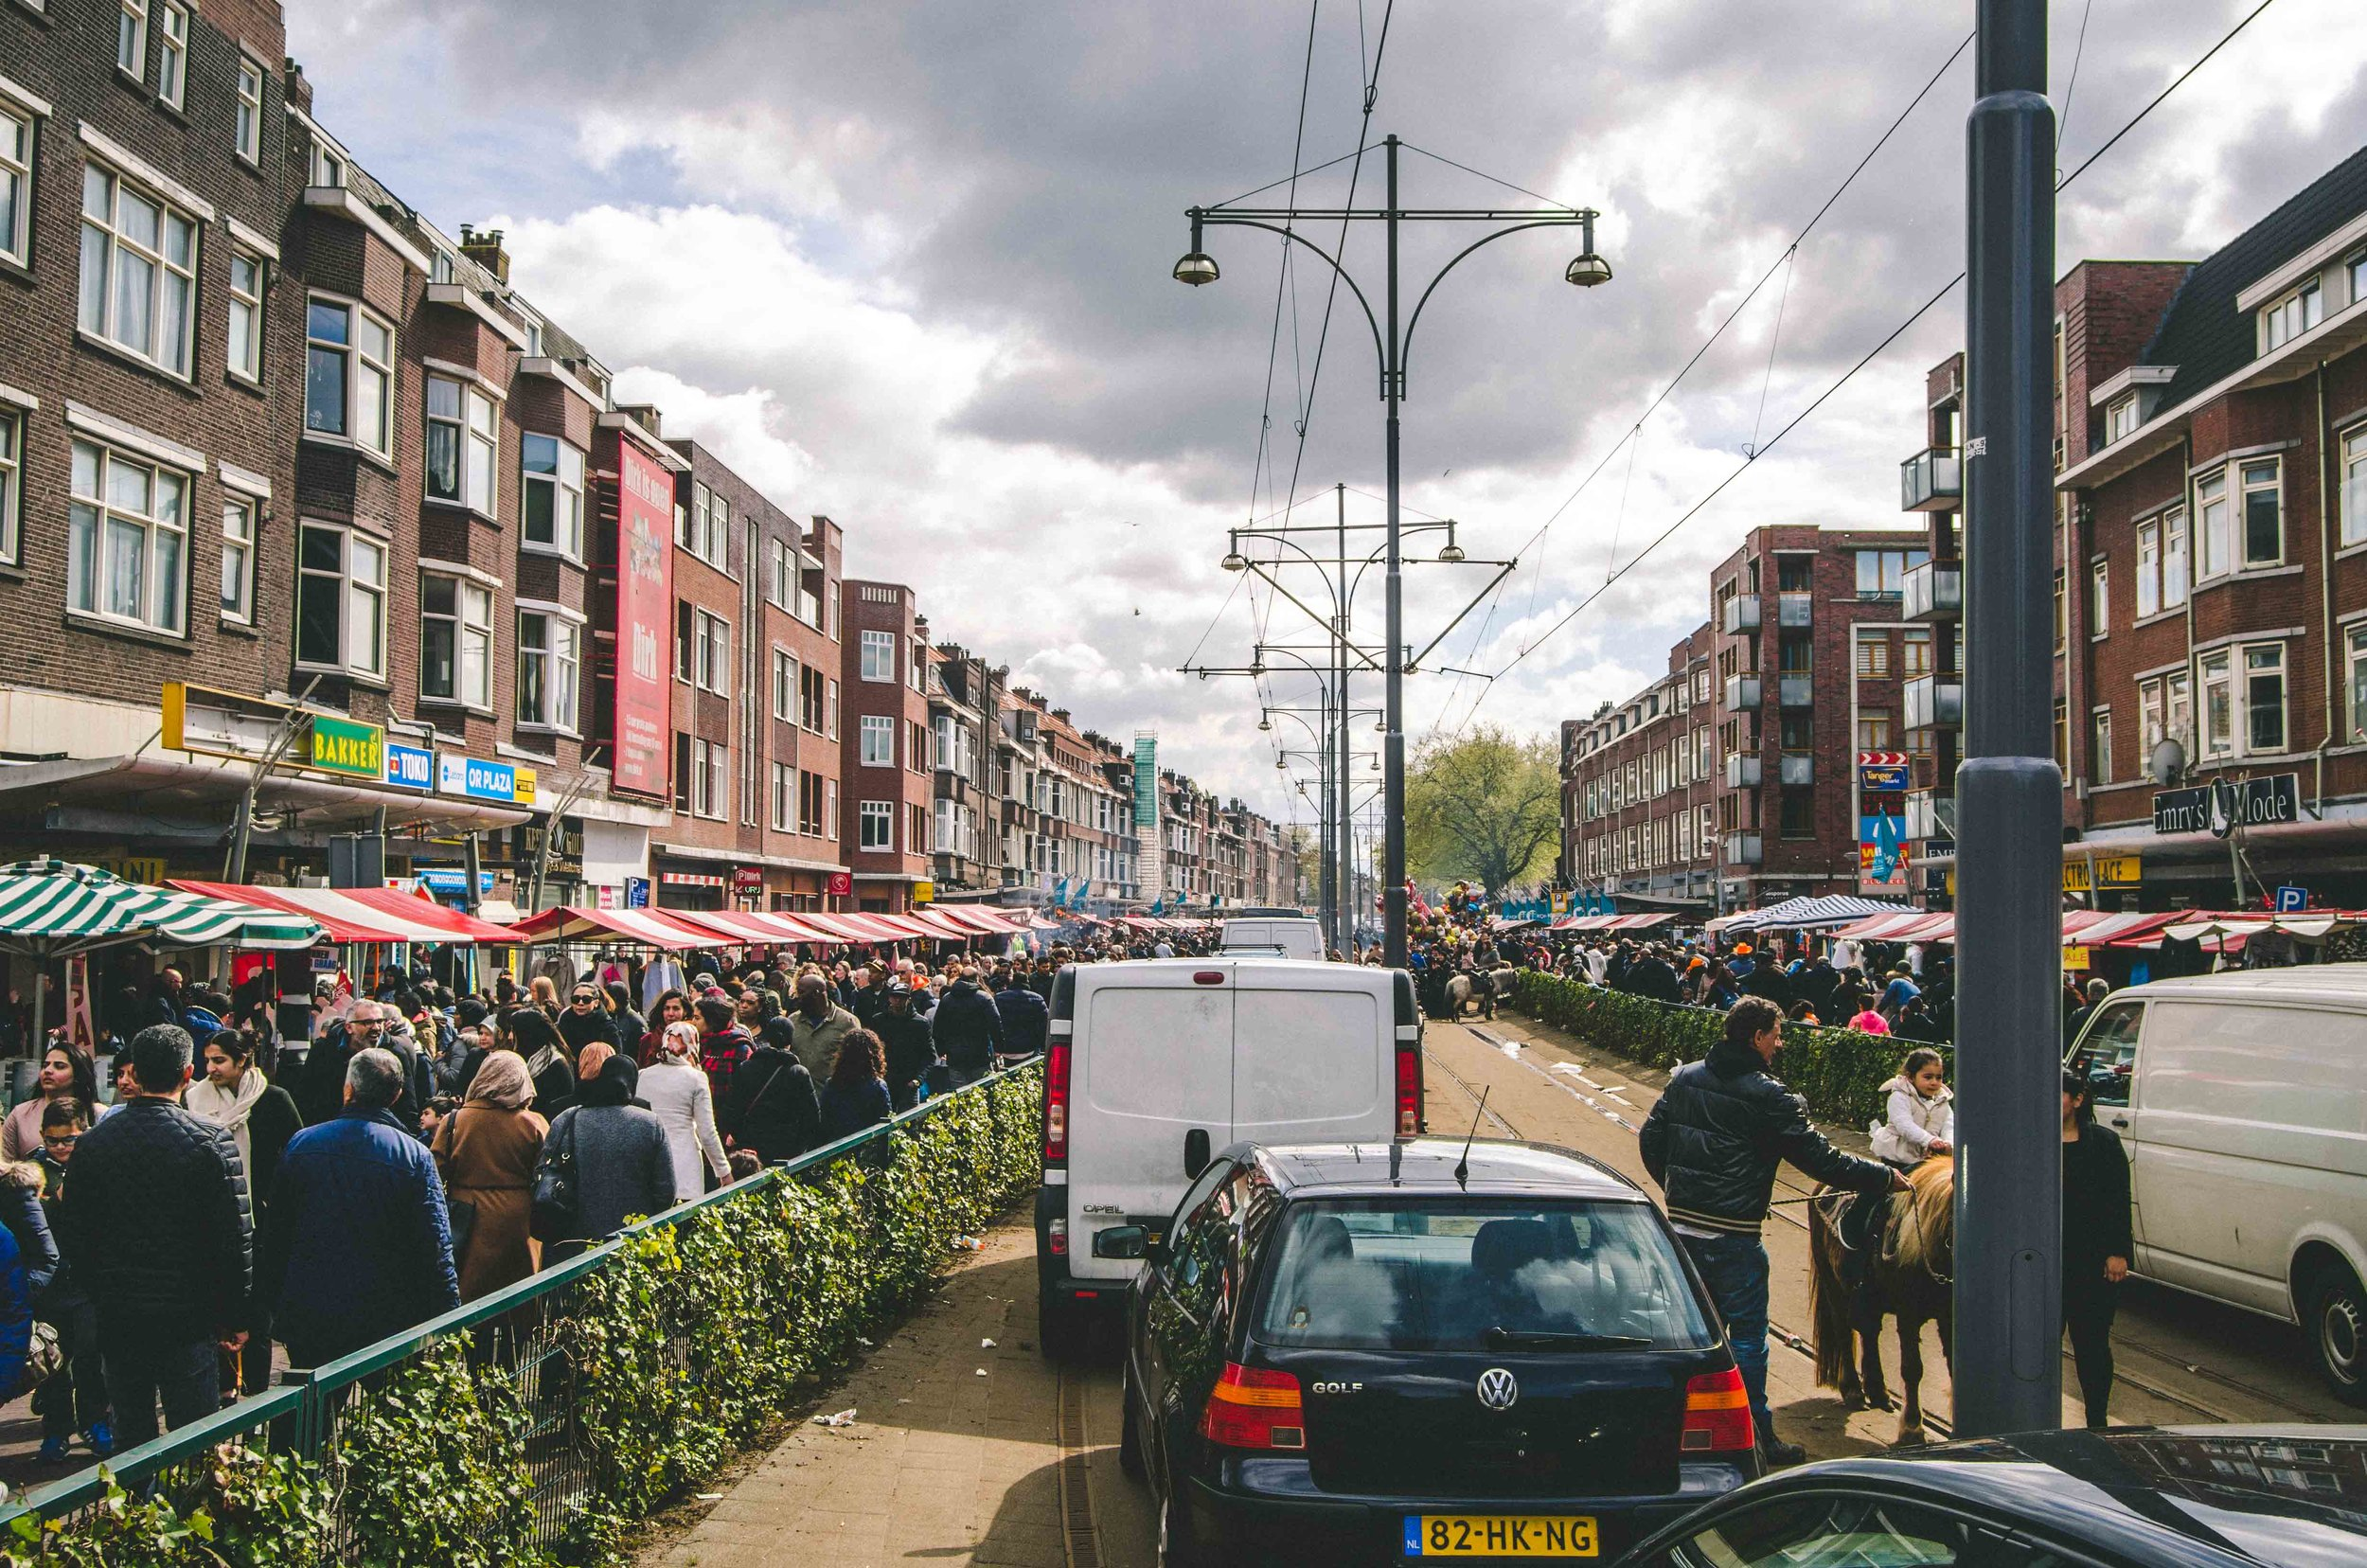 Another flea market in a different neighborhood of Rotterdam, where this section of the tram line was temporarily closed for the market.